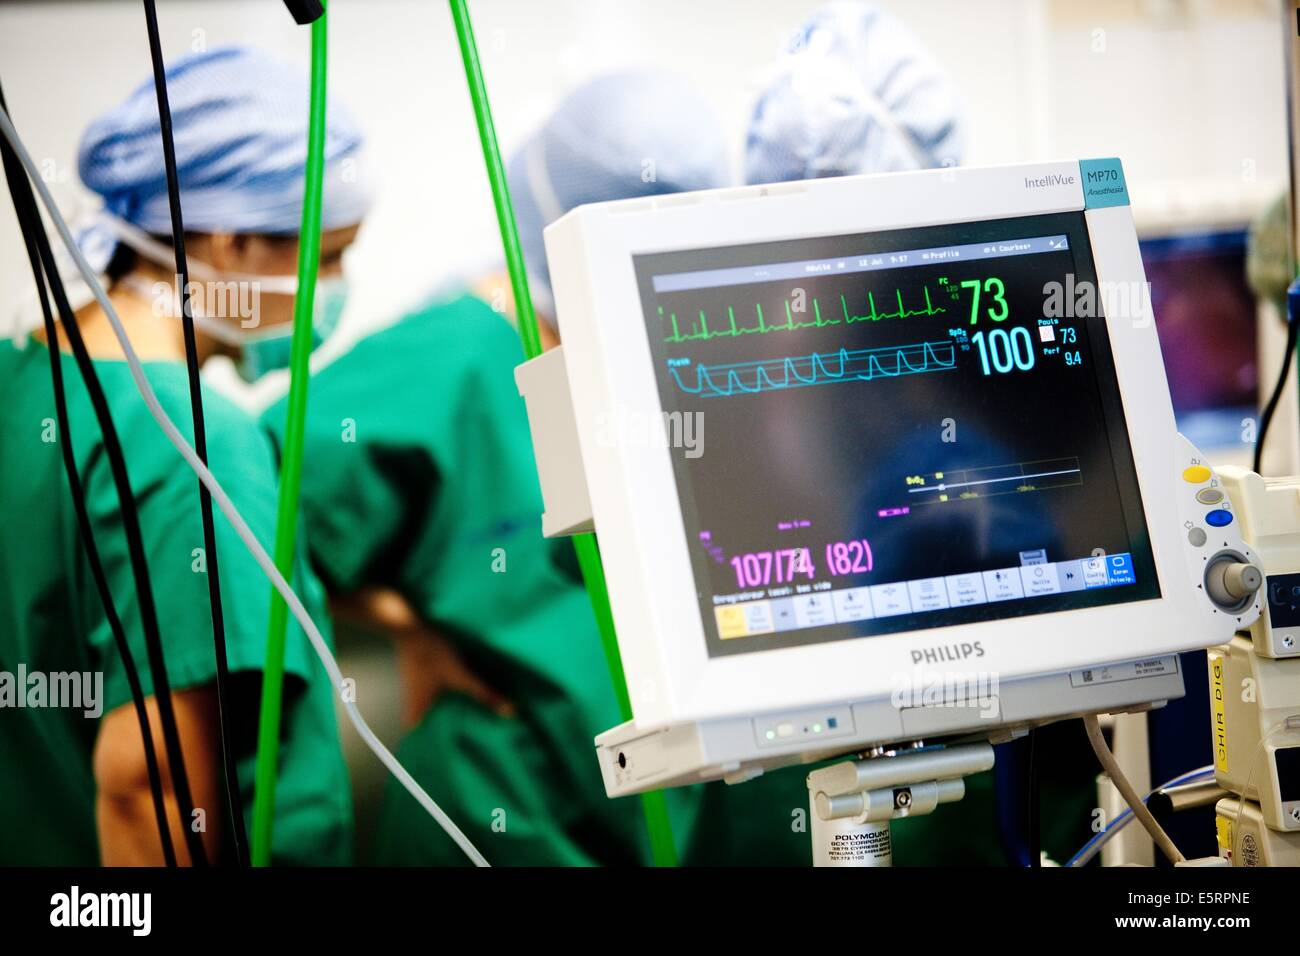 Anaesthetic monitoring equipment during surgery, St Antoine hospital, Paris. - Stock Image